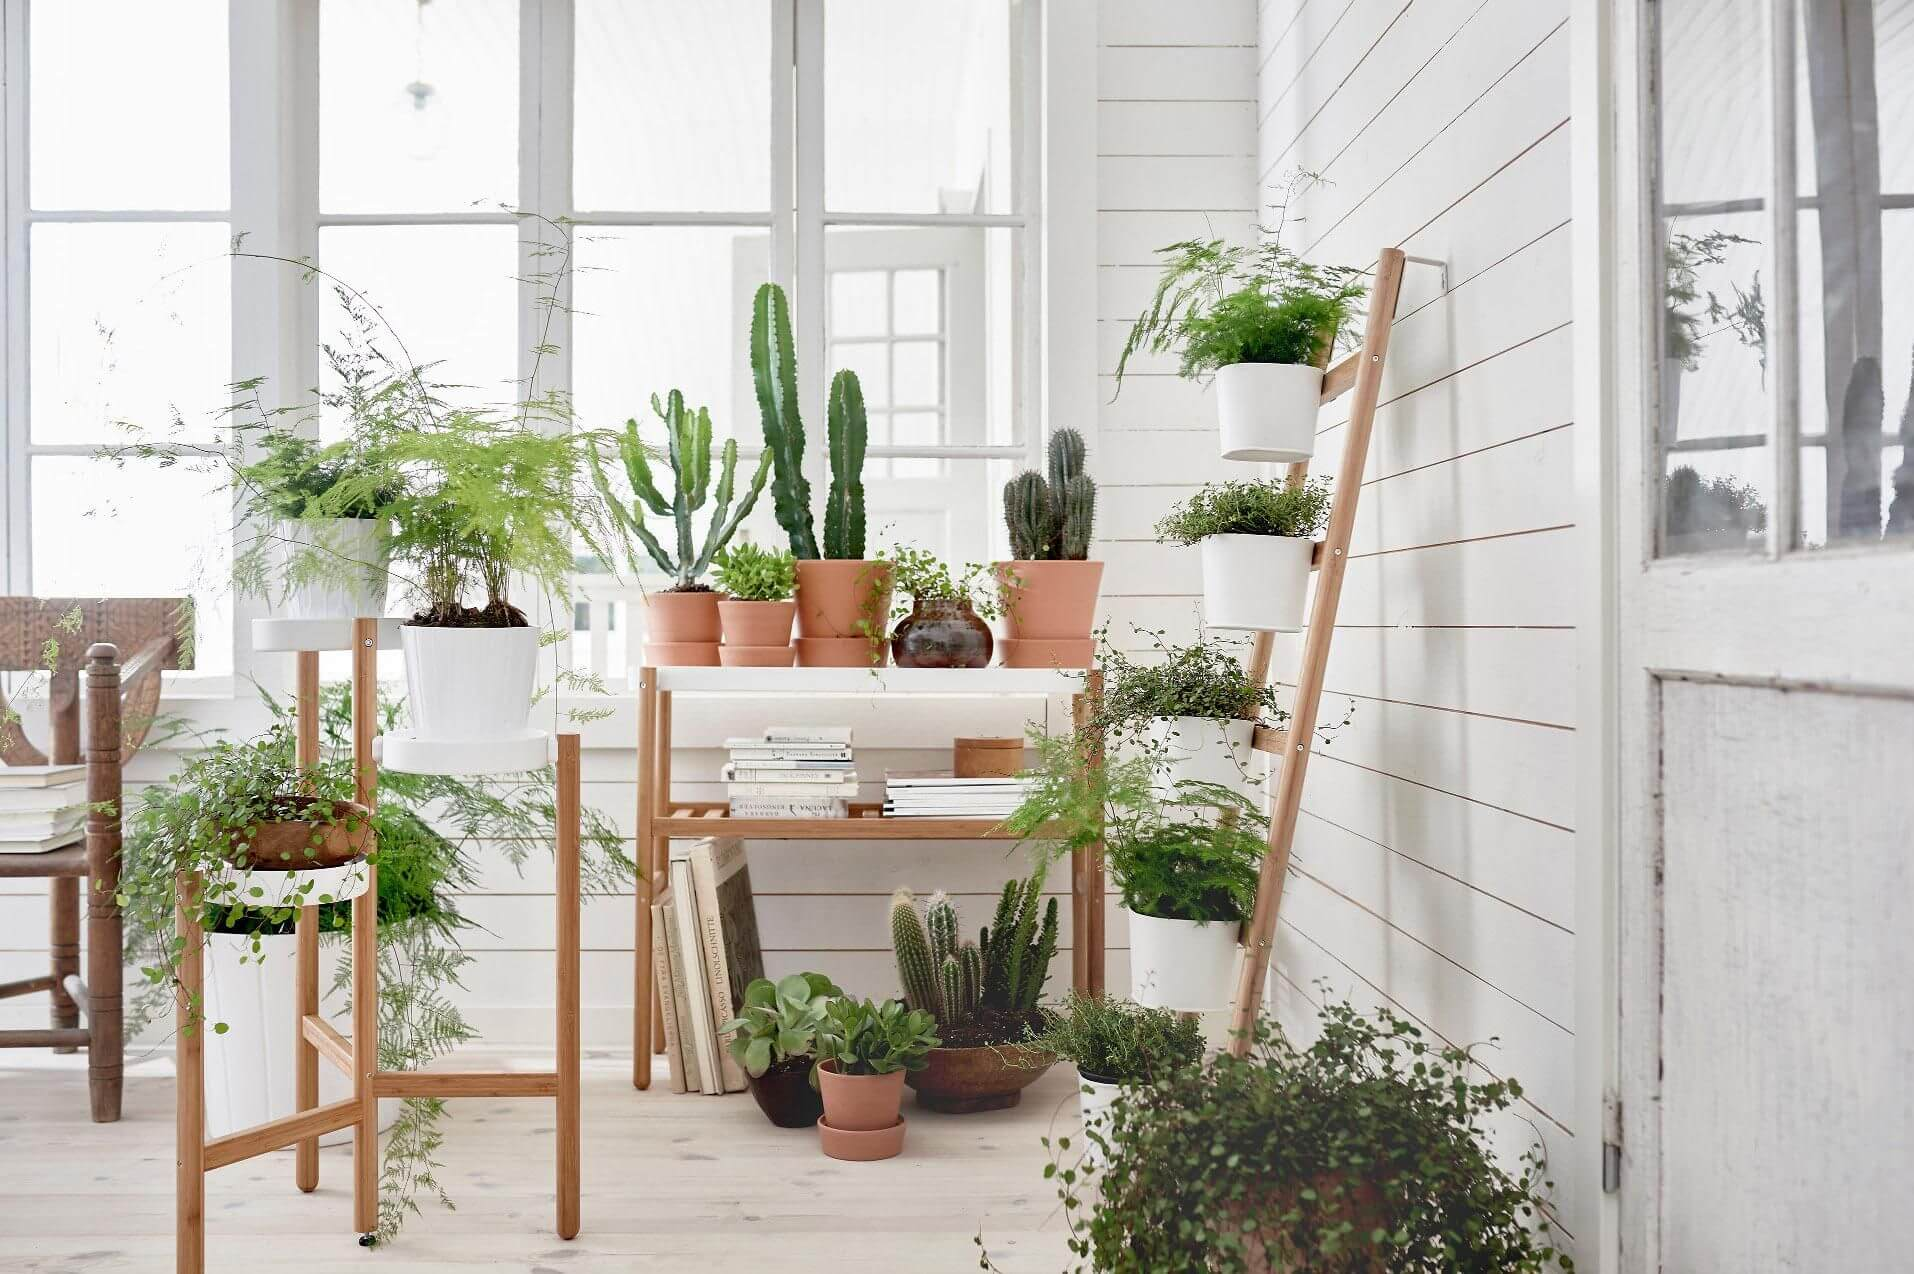 A whole greenhouse in the white interior with different wooden flower stands